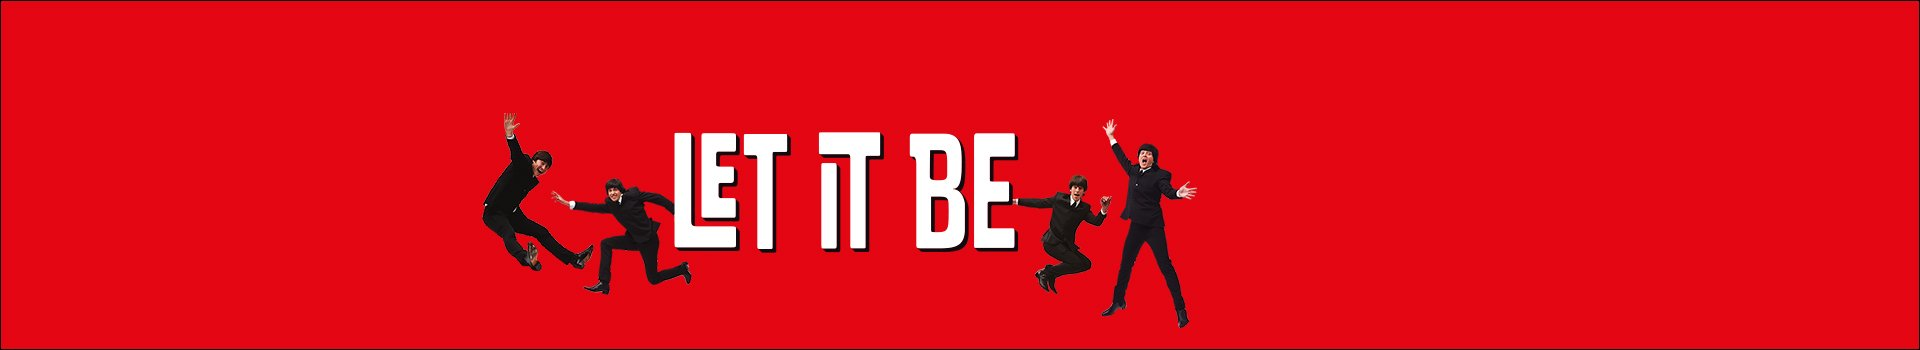 Let It Be banner image